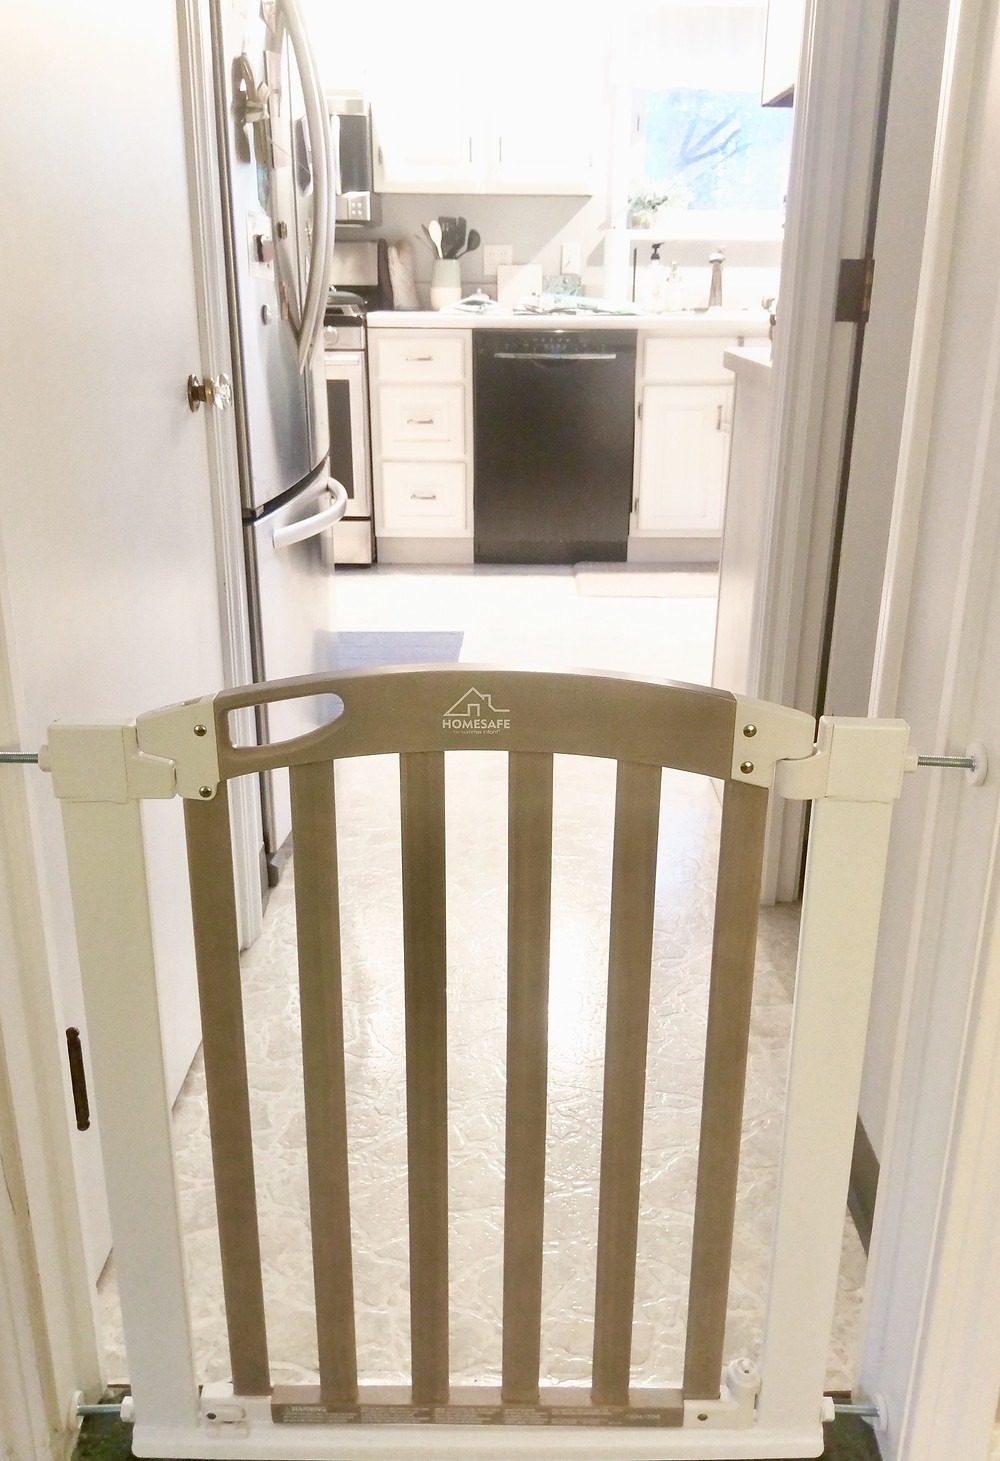 Gray and white infant baby gate